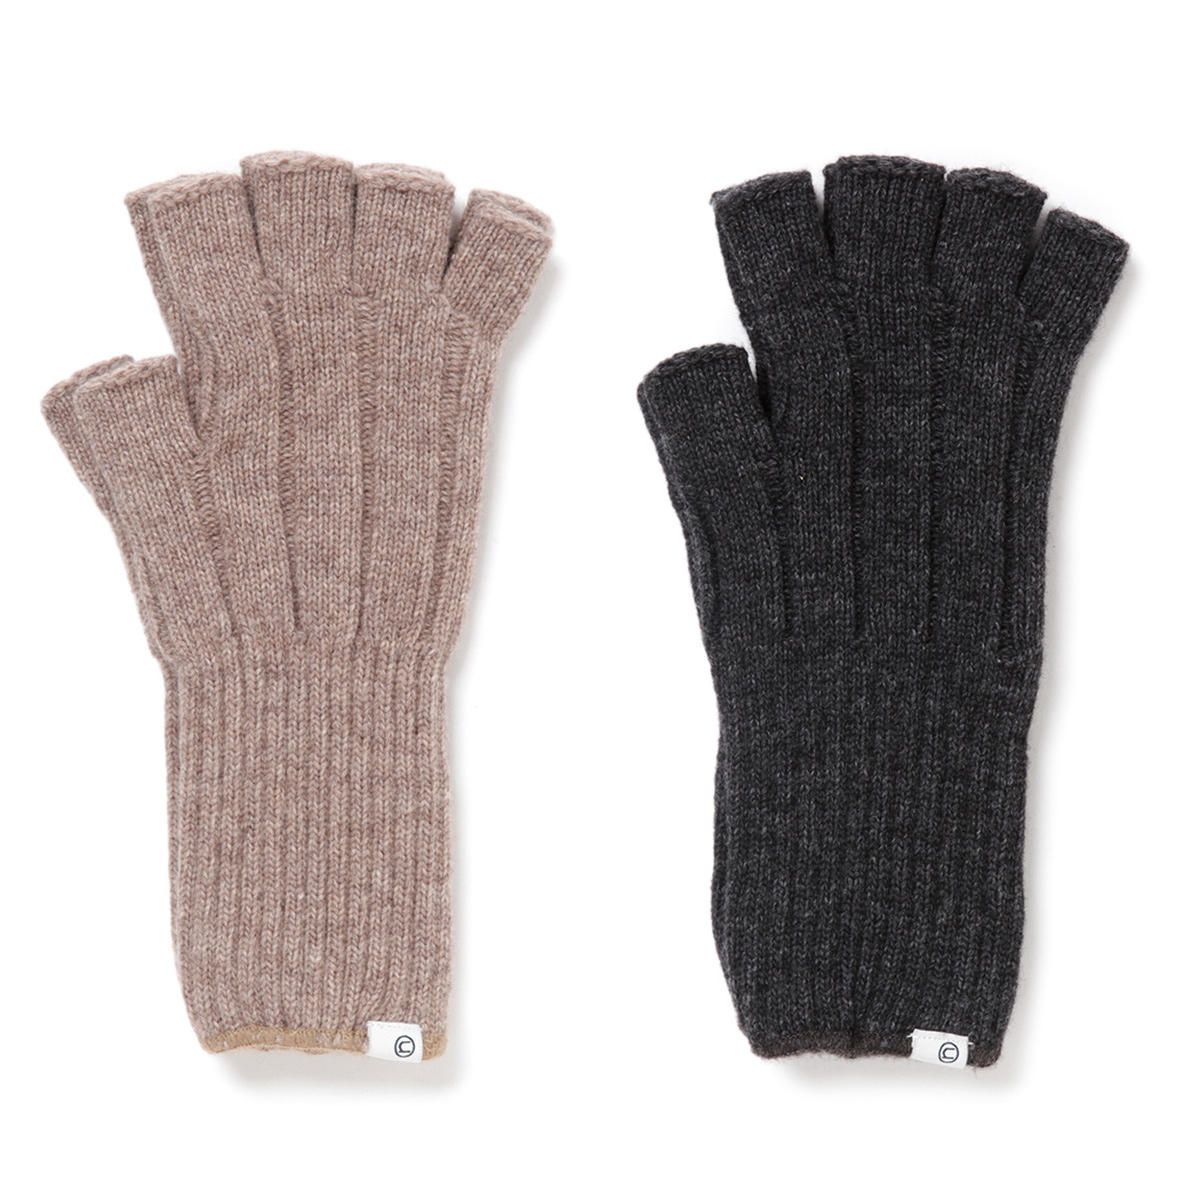 nonnative / DWELLER CUT OFF GLOVES W/N/CA YARN